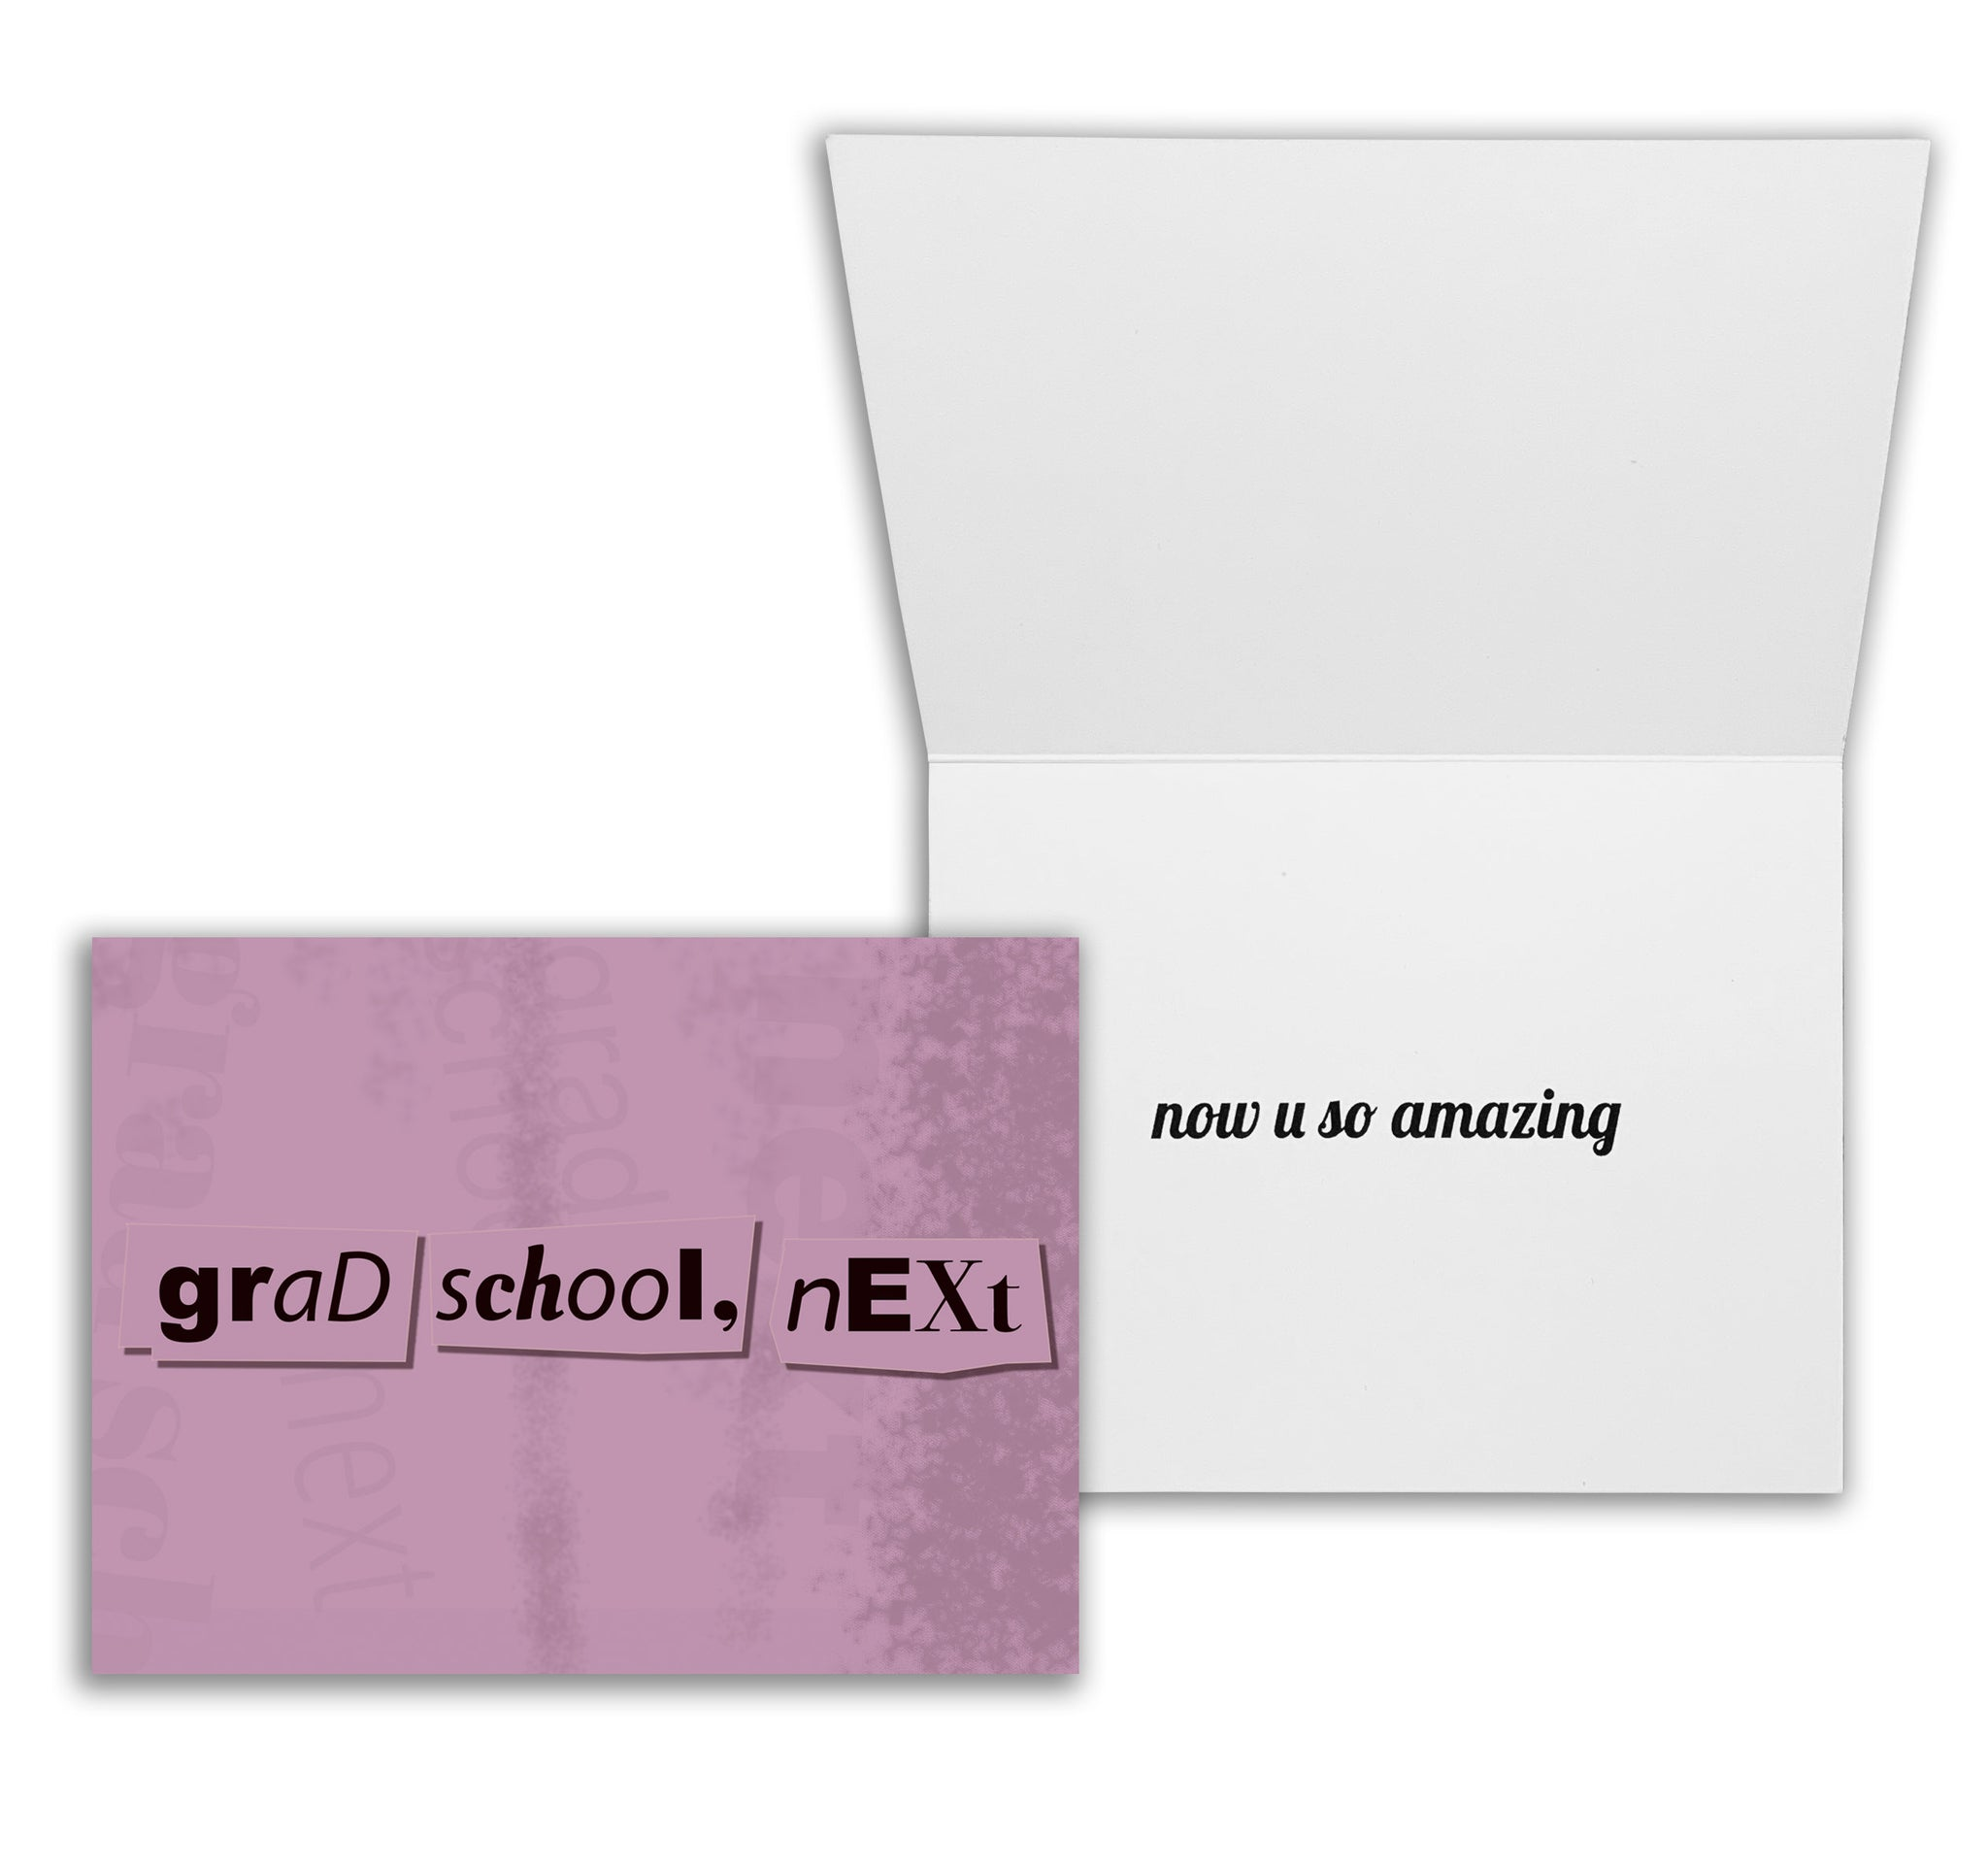 Grad School, Next | Graduate Student Congratulations or Graduation Card